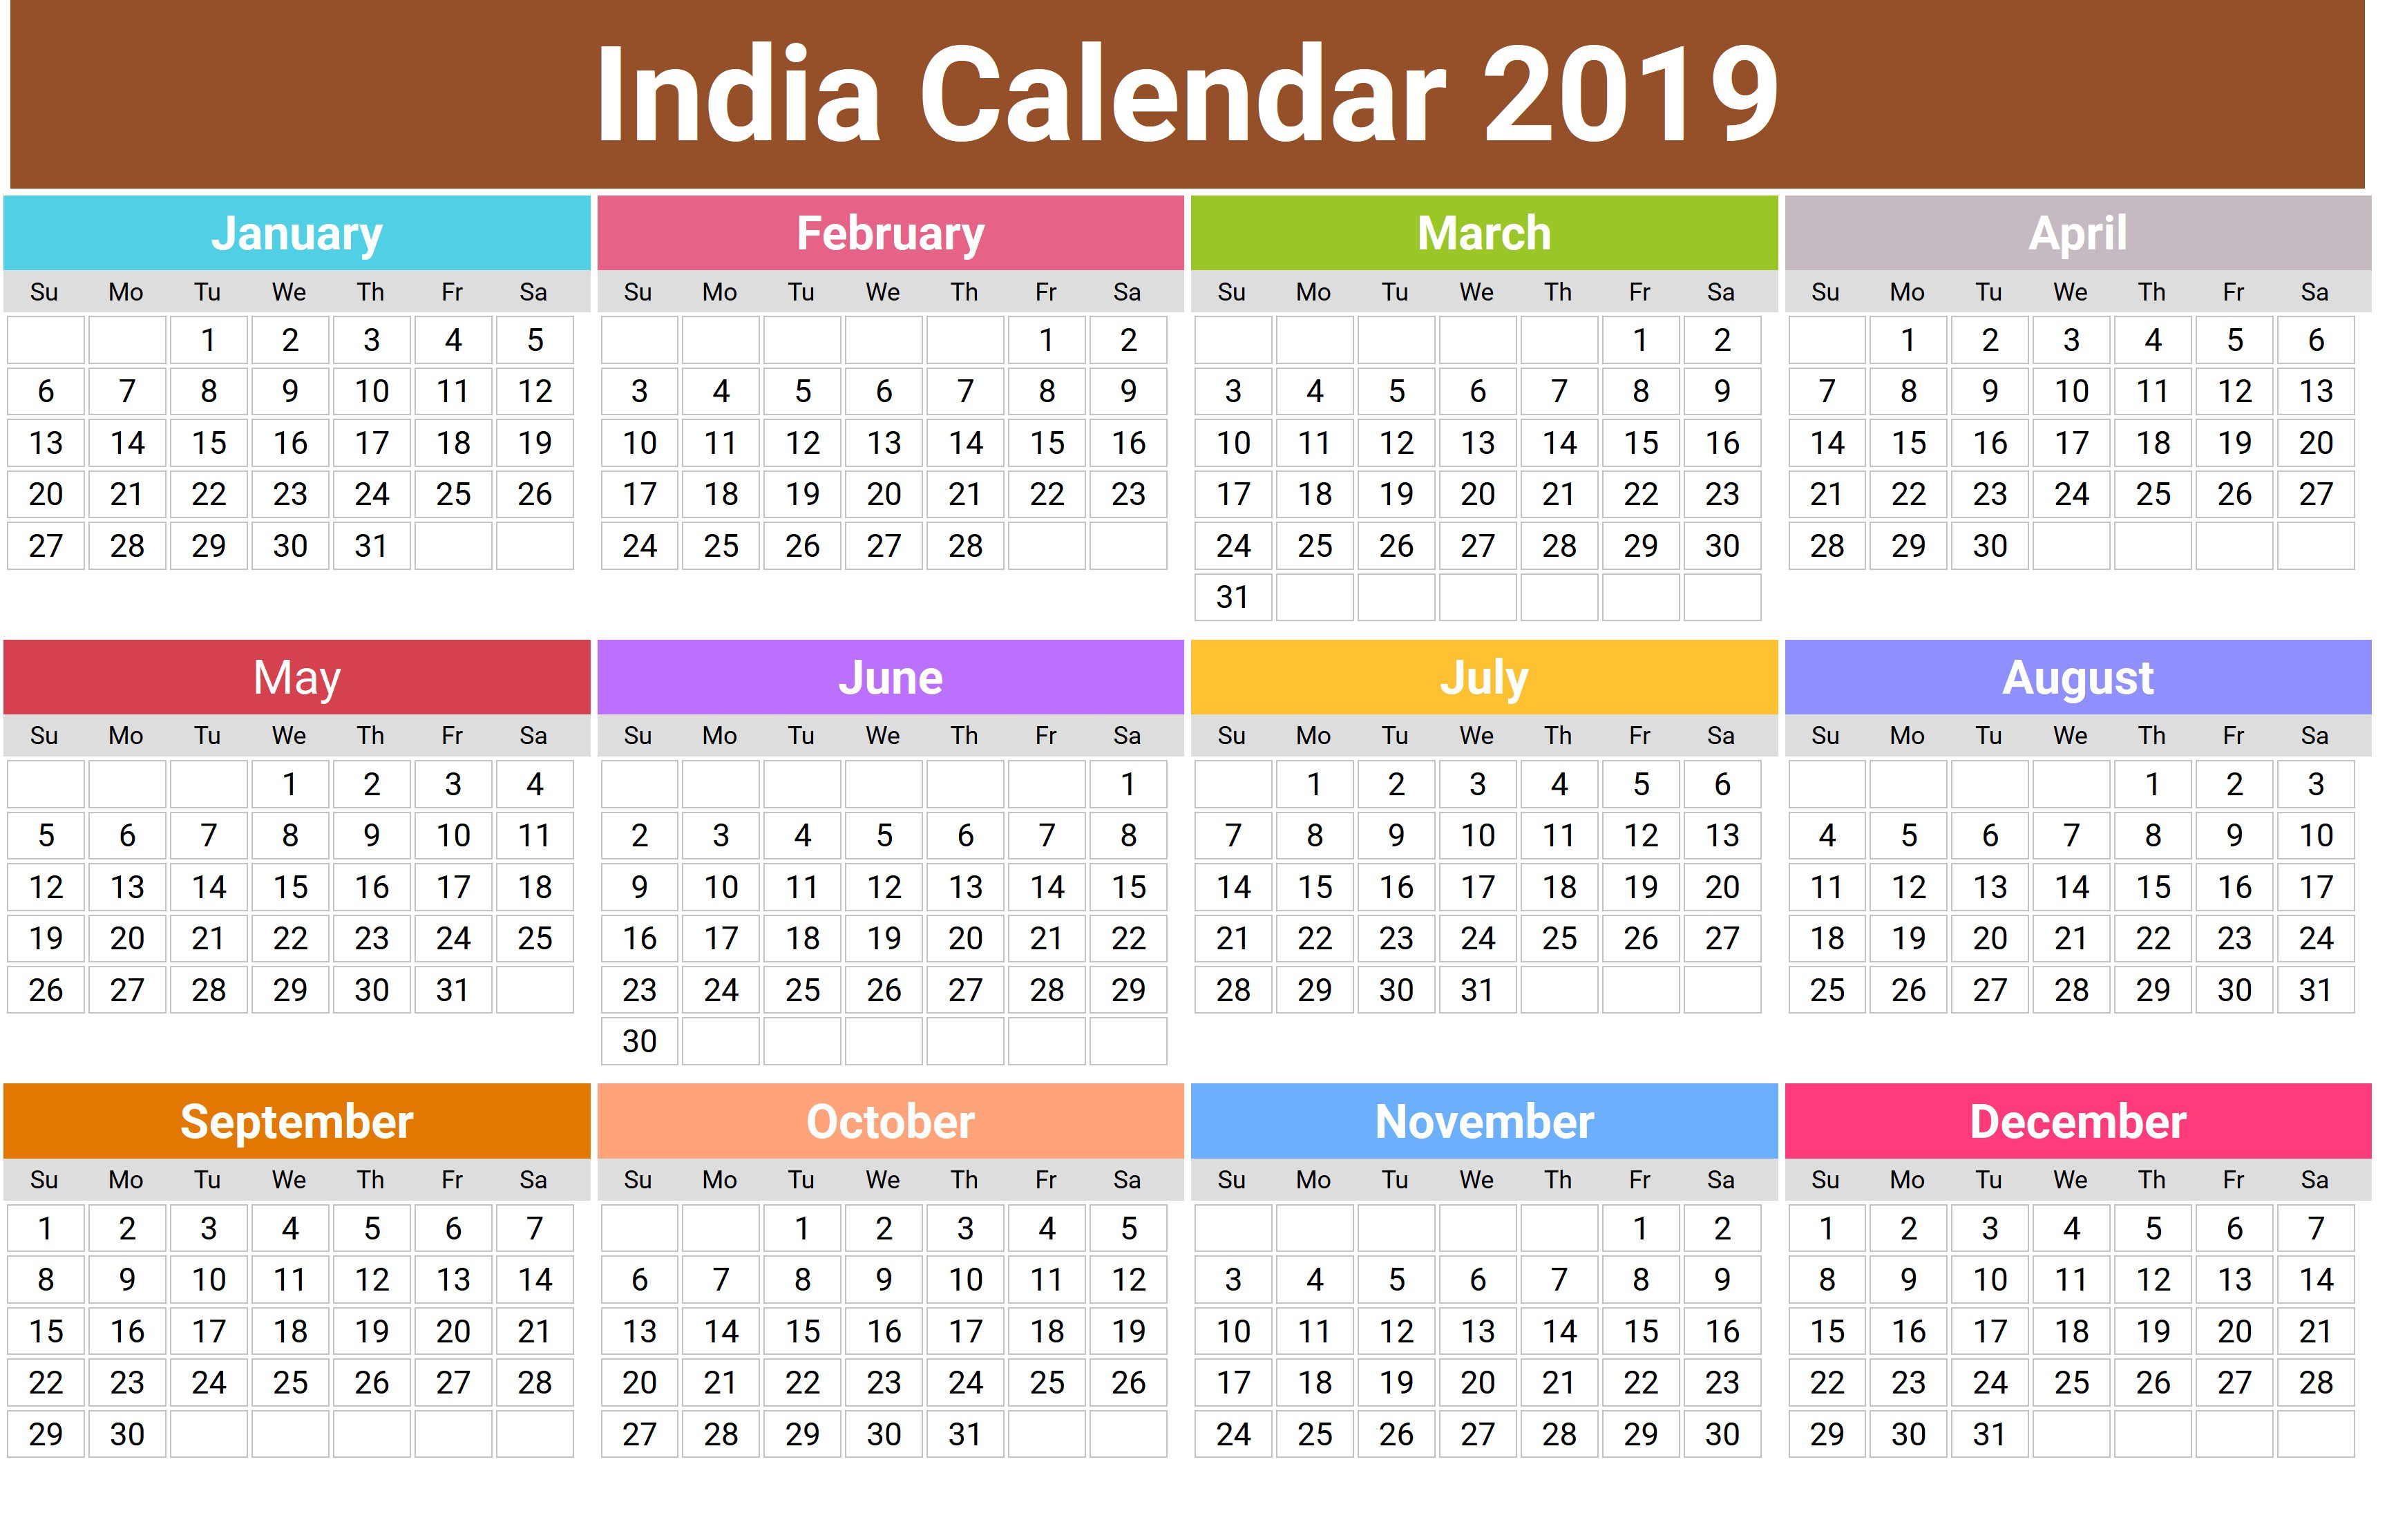 2019 Hindu Calendar With Tithi | Tyohar, Holidays, Festivals within Calender Of October 2019 According To Tithi